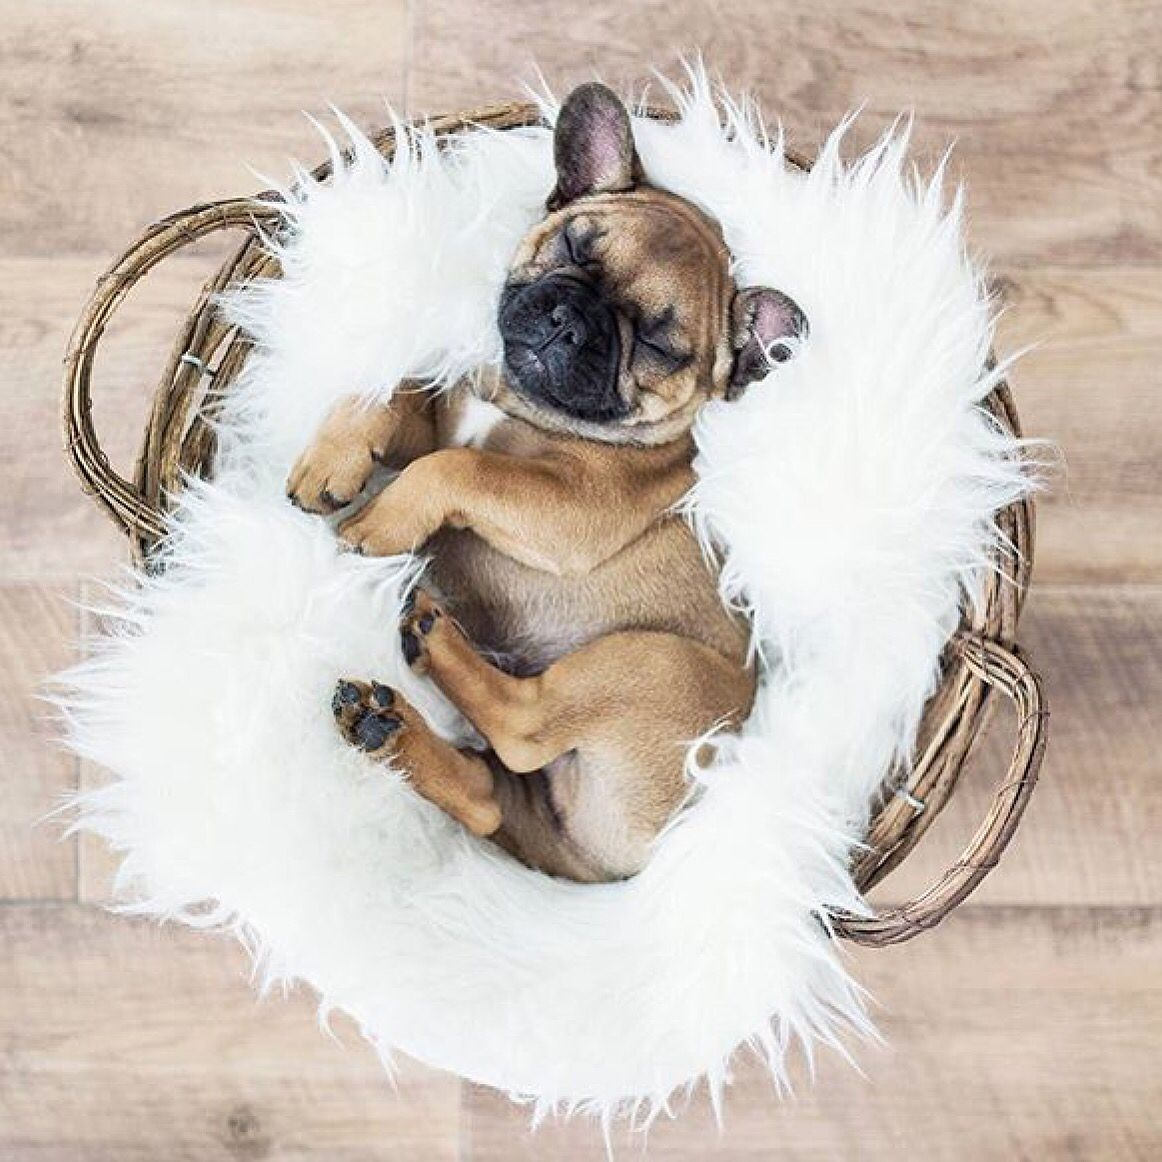 Cuteness overload ♡  #frenchbulldog #frenchie #frenchies